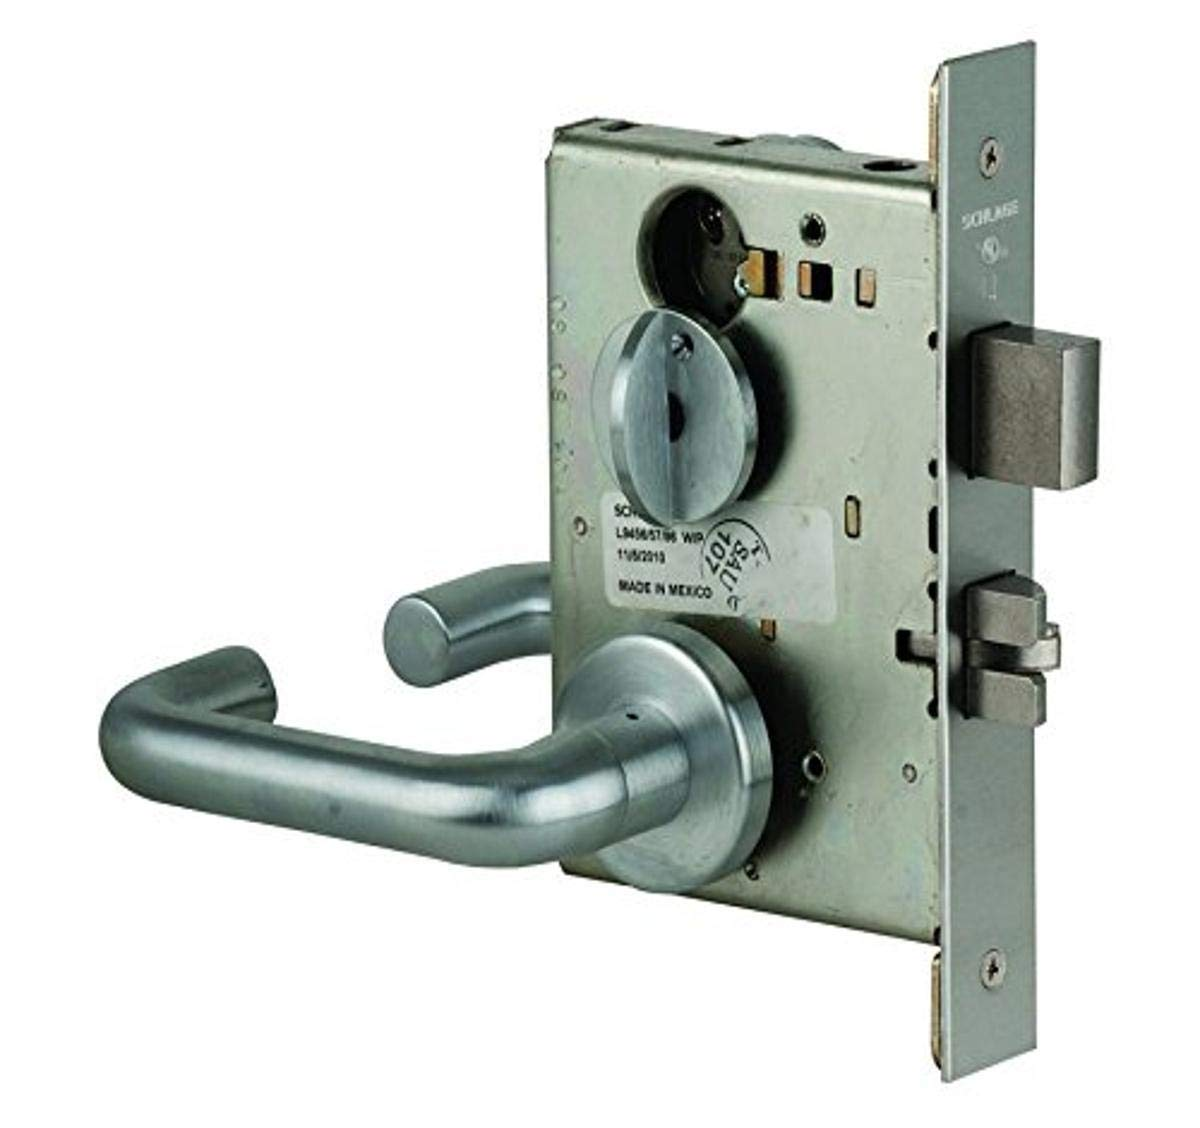 Schlage L9453P 03A 626 C123 Keyway Series L Grade 1 Mortise Lock, Entrance Function, C123 Keyway, 03A Design, Satin Chrome Finish